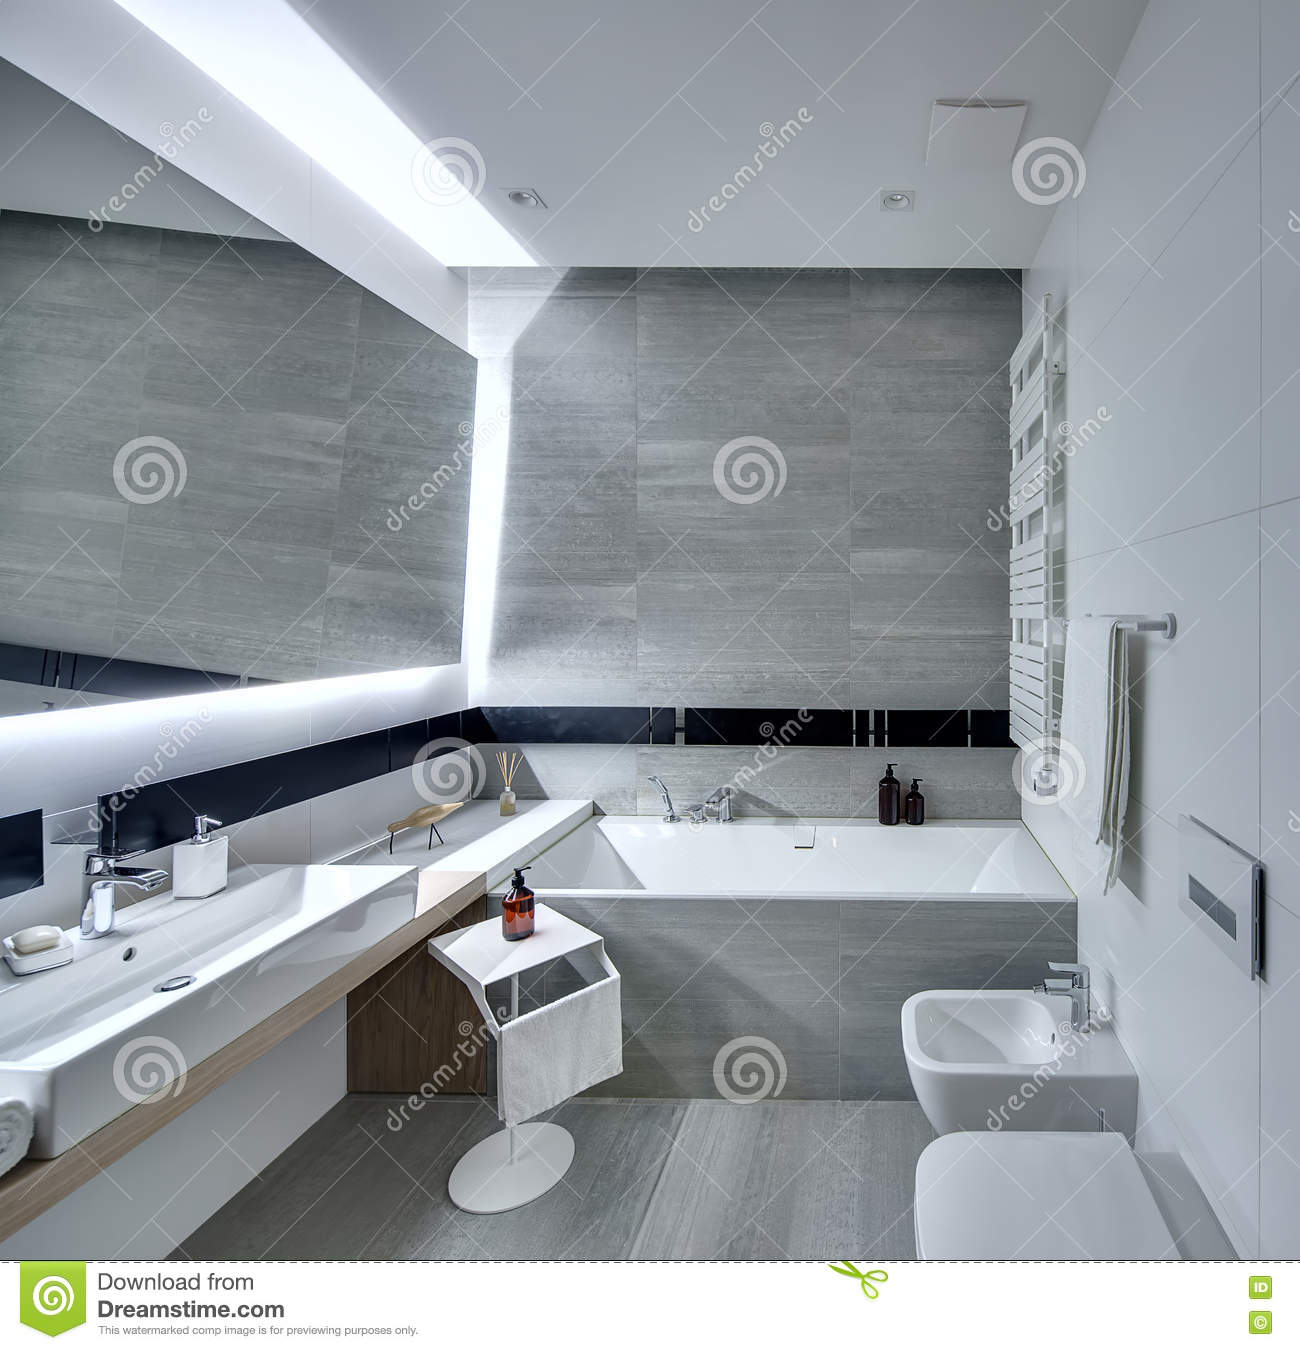 Bathroom in modern style stock photo. Image of dispenser - 81507250